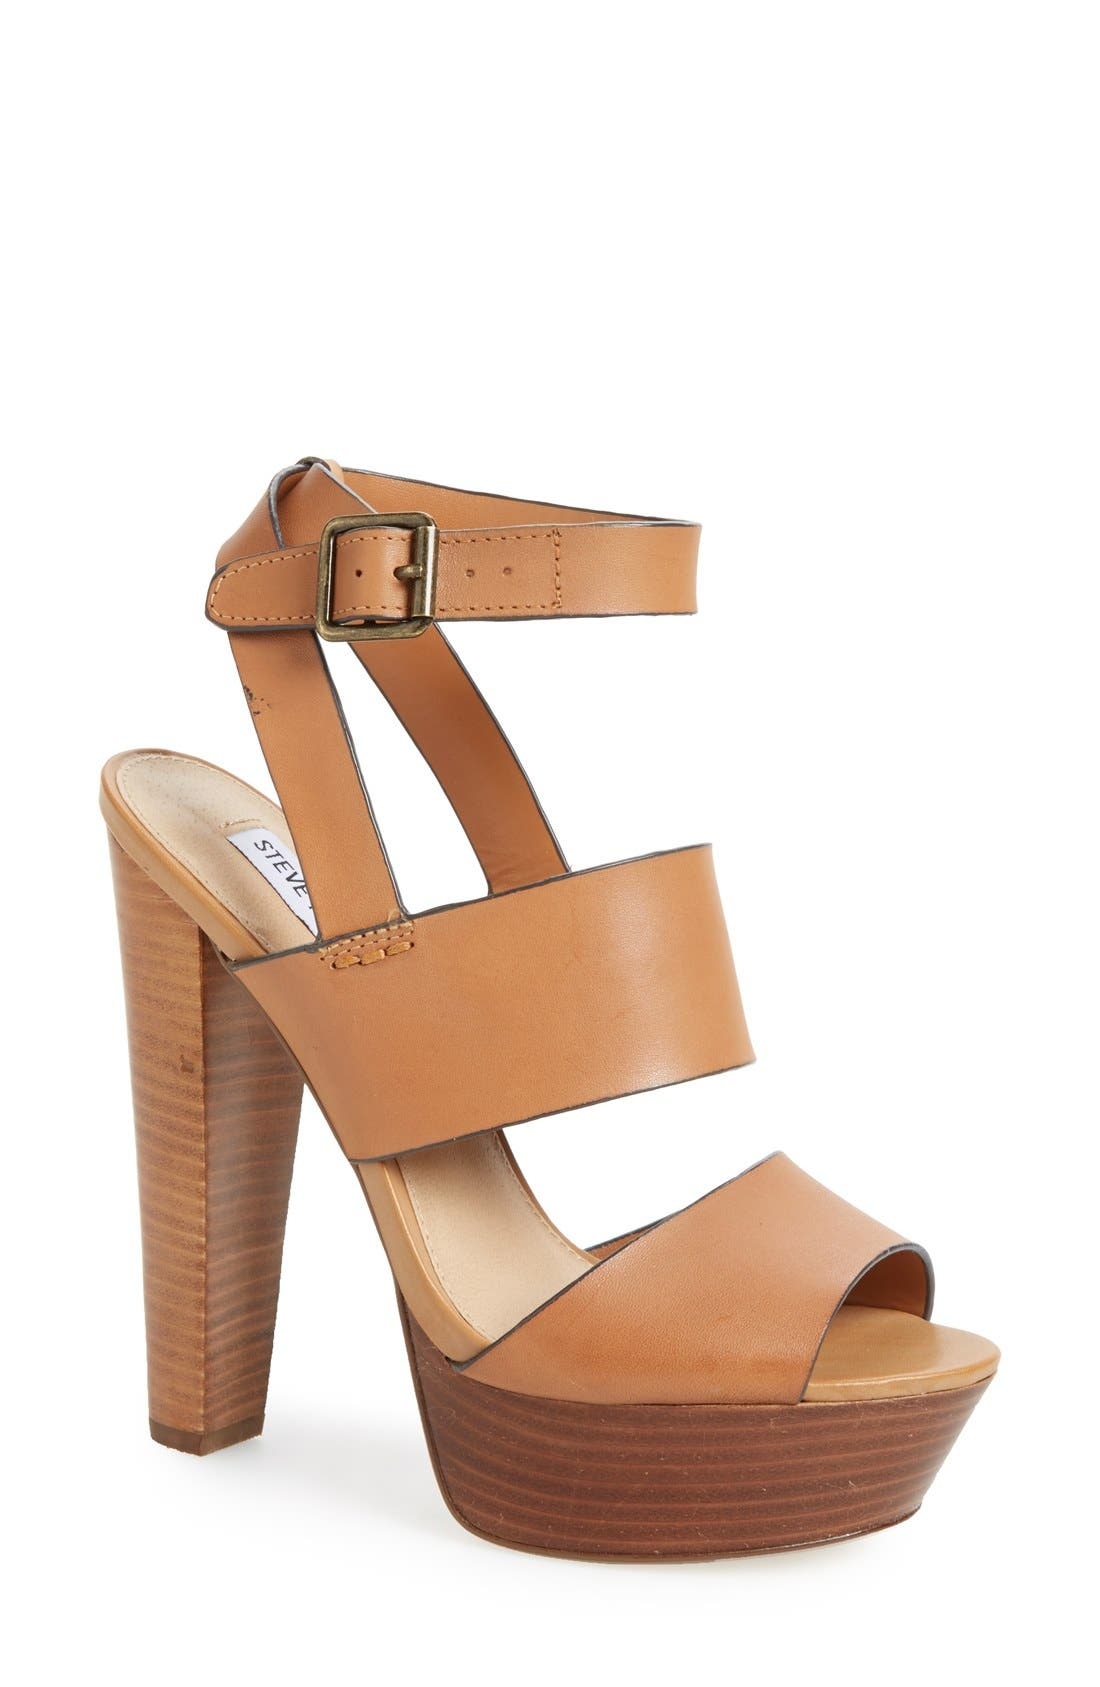 Alternate Image 1 Selected - Steve Madden 'Dezzzy' Leather Ankle Strap Sandal (Women)